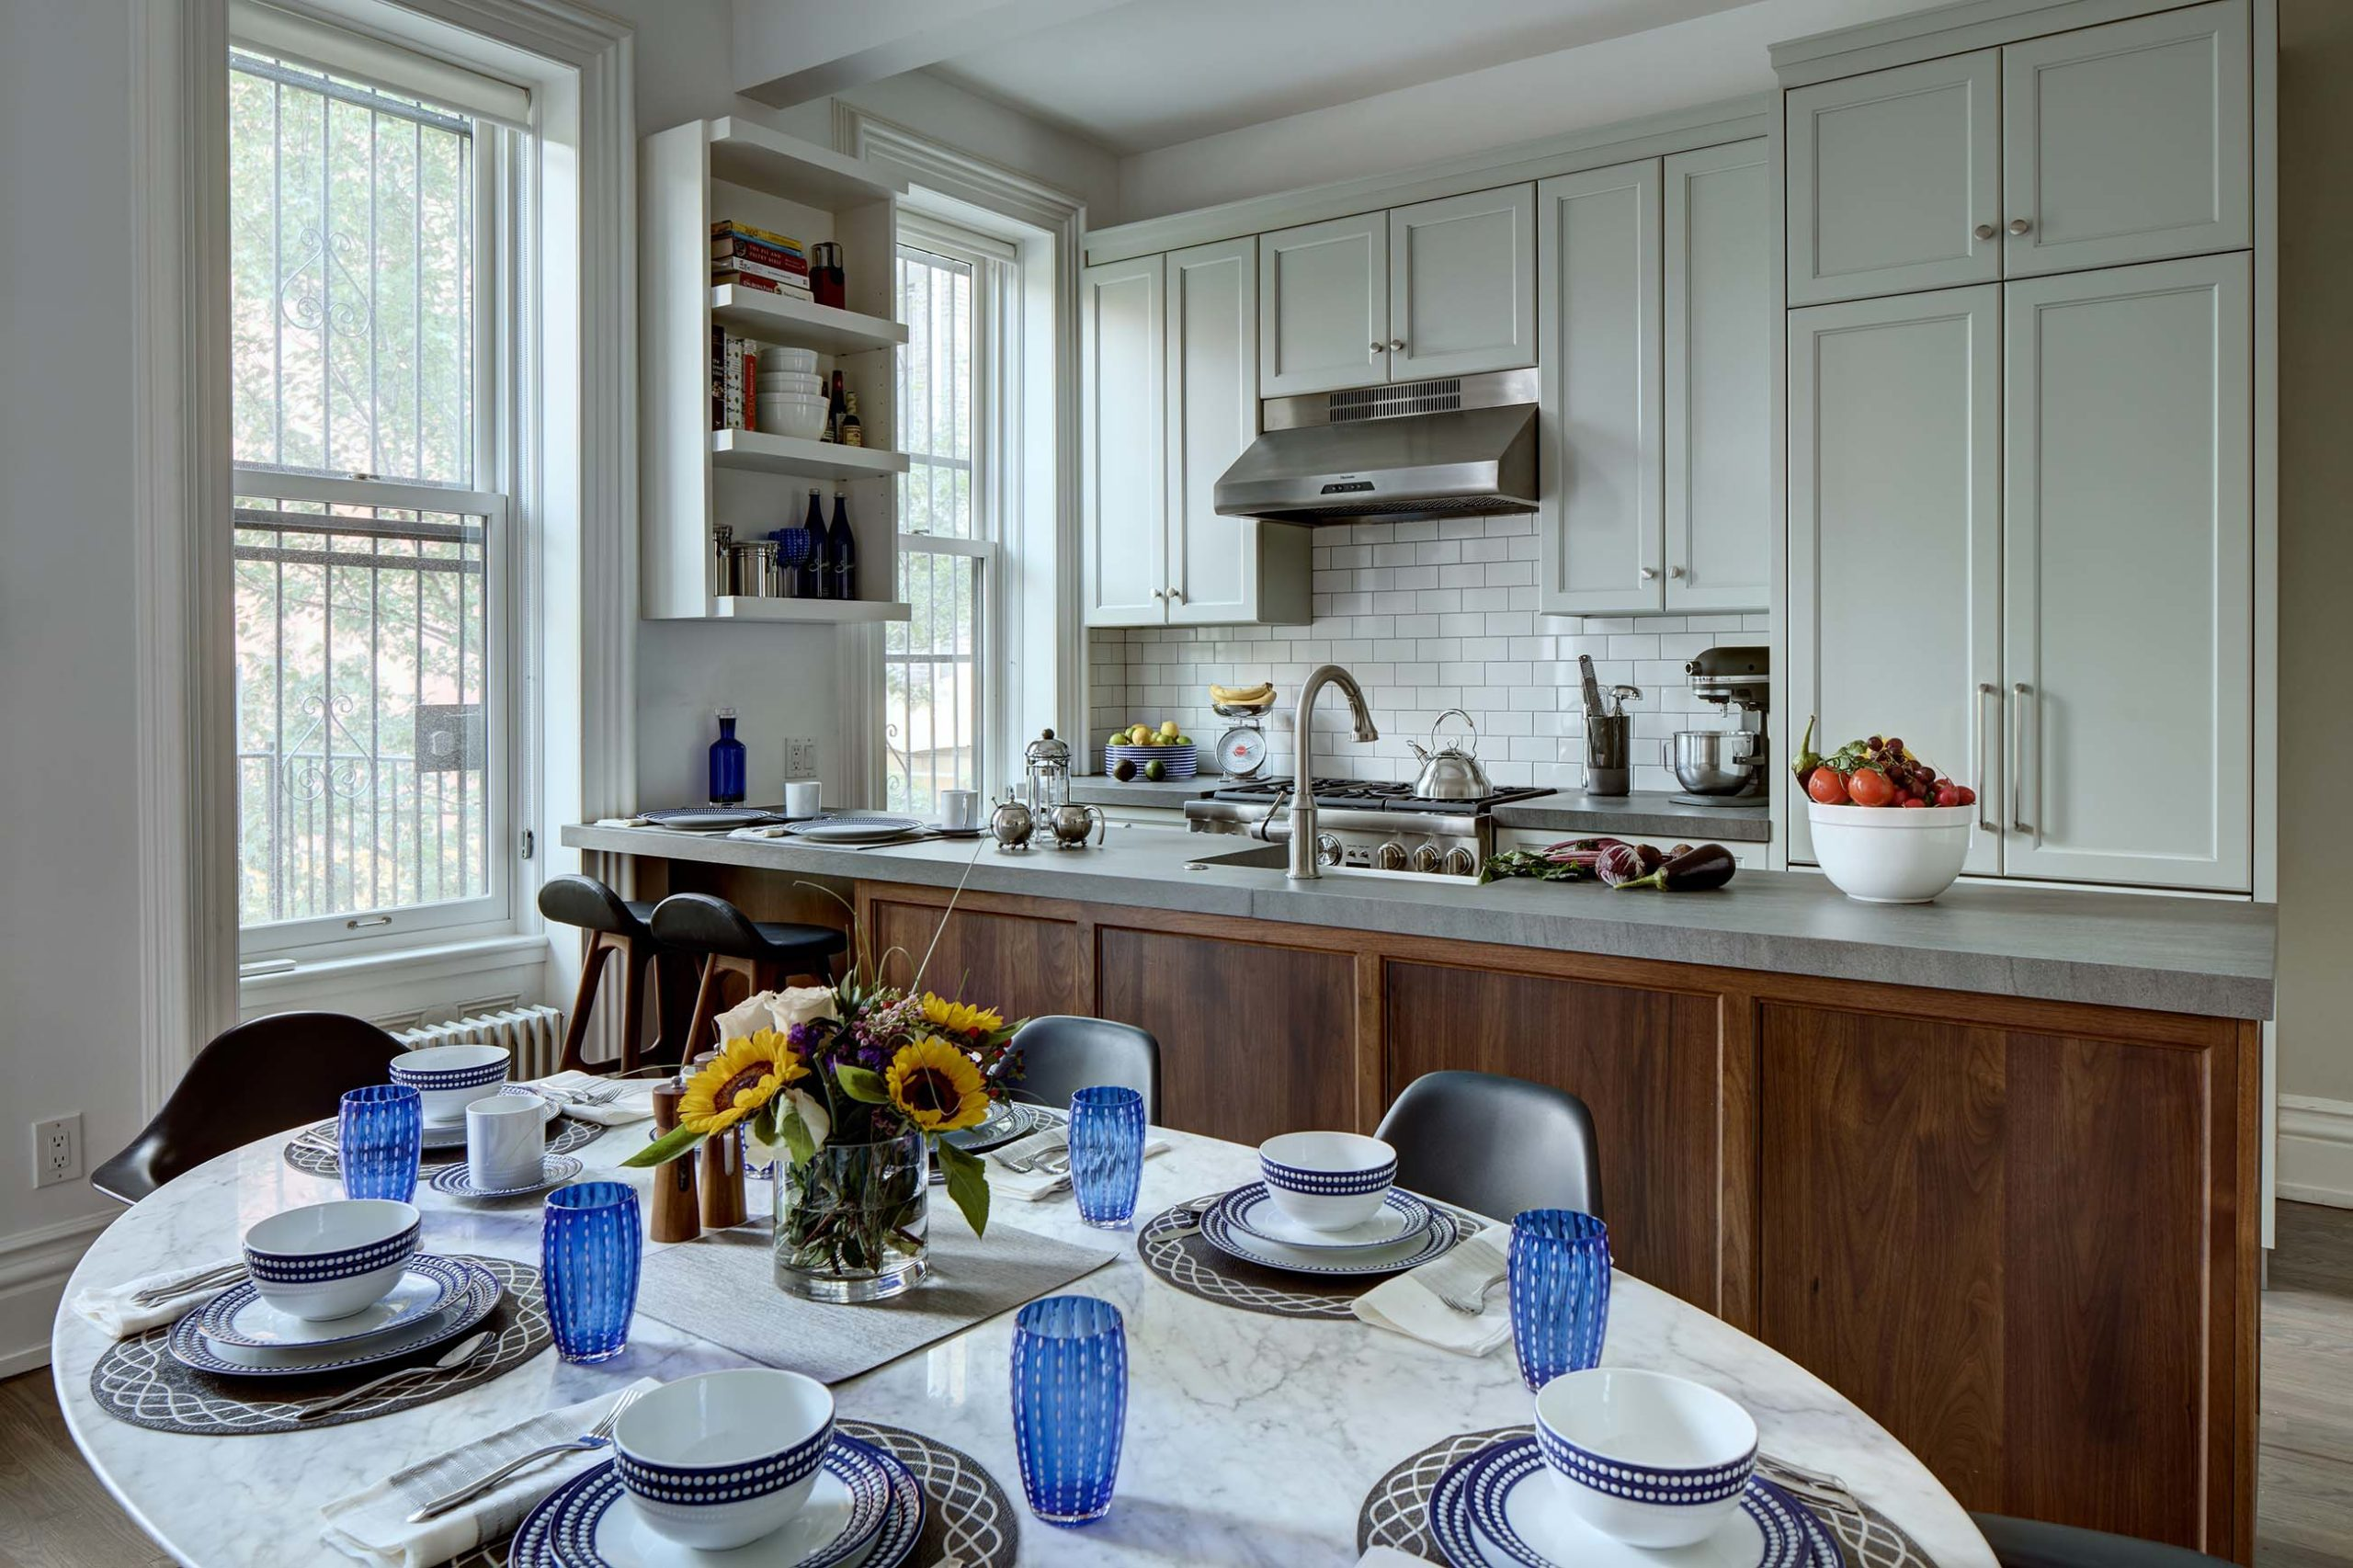 Townhouse Kitchens Image 1